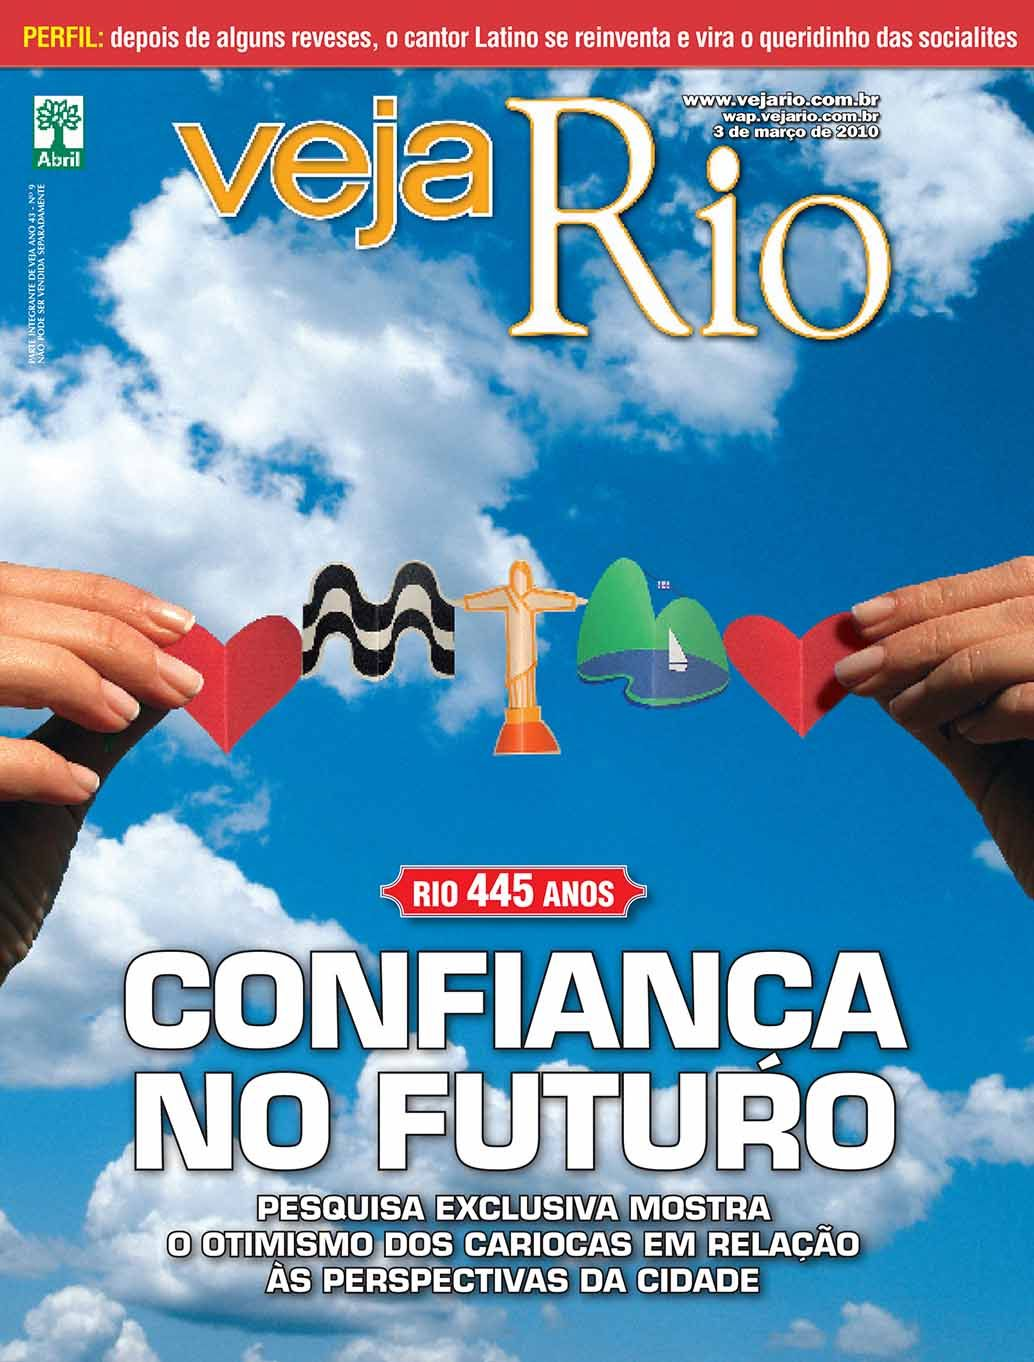 My work: illustration made out of paper sculpture. Cover page Veja Rio magazine.